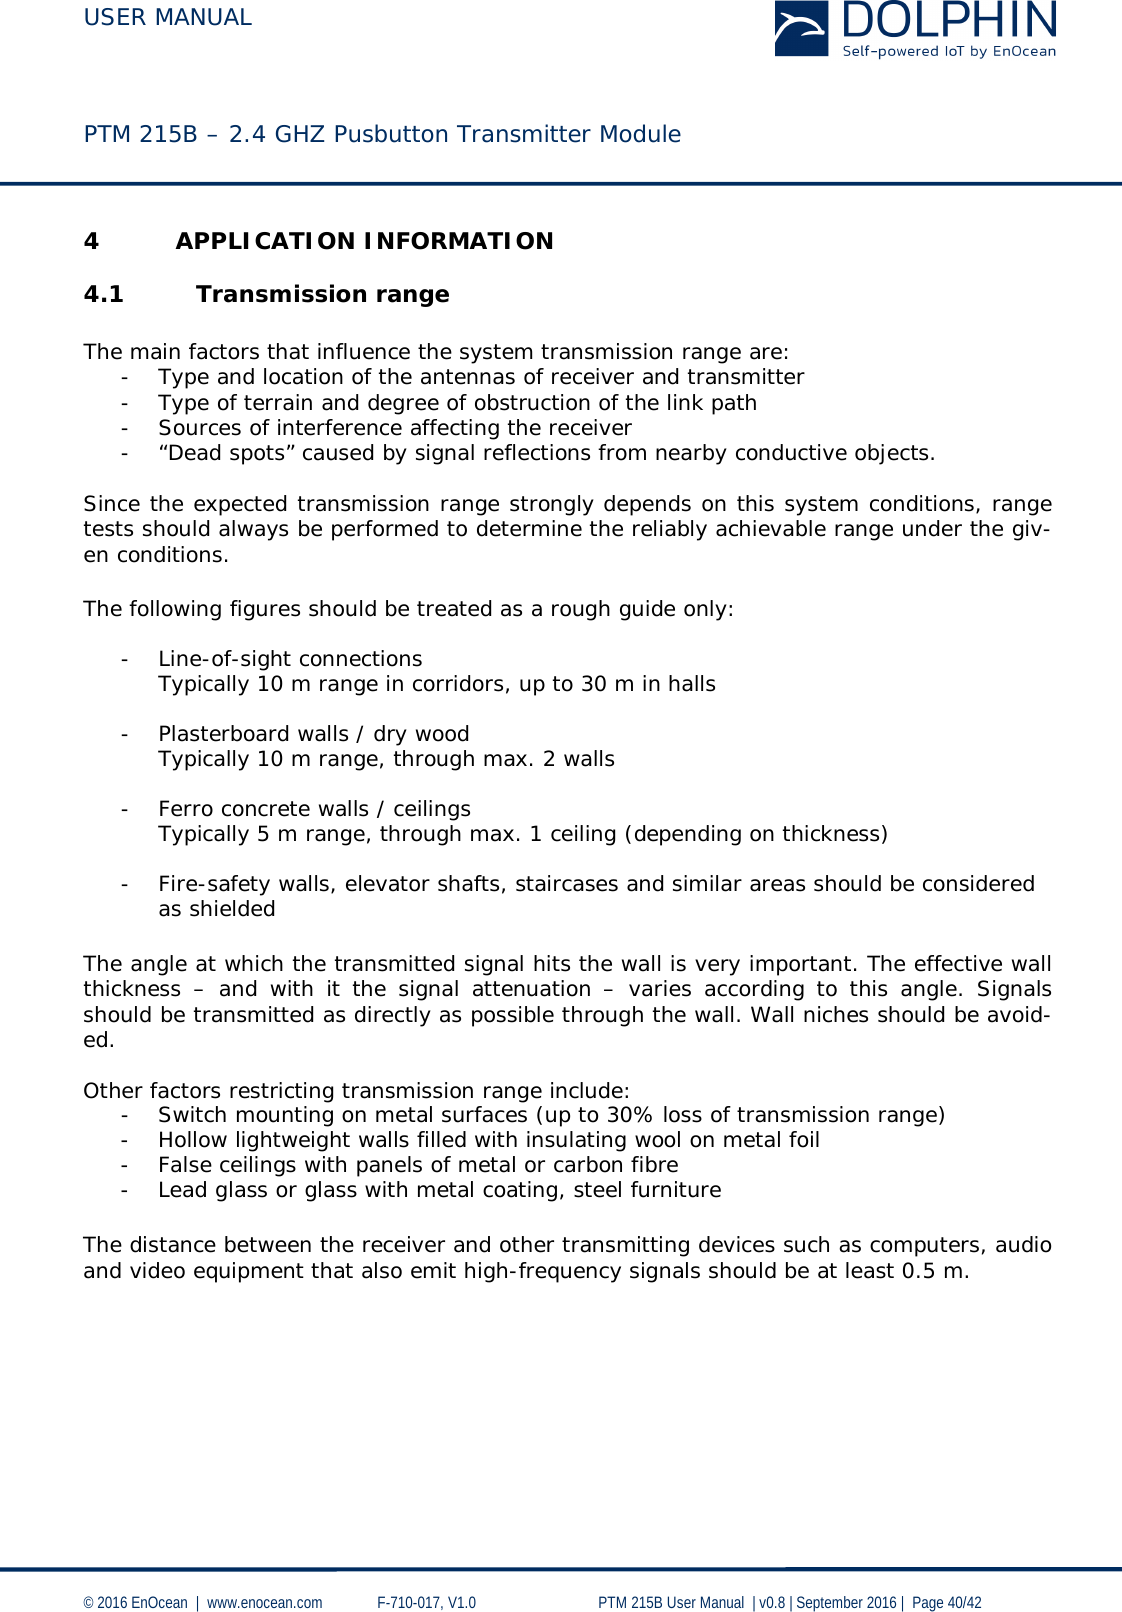 """USER MANUAL    PTM 215B – 2.4 GHZ Pusbutton Transmitter Module  © 2016 EnOcean     www.enocean.com   F-710-017, V1.0        PTM 215B User Manual    v0.8   September 2016    Page 40/42  4 APPLICATION INFORMATION 4.1 Transmission range  The main factors that influence the system transmission range are: - Type and location of the antennas of receiver and transmitter - Type of terrain and degree of obstruction of the link path - Sources of interference affecting the receiver - """"Dead spots"""" caused by signal reflections from nearby conductive objects.   Since the expected transmission range strongly depends on this system conditions, range tests should always be performed to determine the reliably achievable range under the giv-en conditions. The following figures should be treated as a rough guide only:  - Line-of-sight connections Typically 10 m range in corridors, up to 30 m in halls  - Plasterboard walls / dry wood Typically 10 m range, through max. 2 walls  - Ferro concrete walls / ceilings Typically 5 m range, through max. 1 ceiling (depending on thickness)  - Fire-safety walls, elevator shafts, staircases and similar areas should be considered as shielded  The angle at which the transmitted signal hits the wall is very important. The effective wall thickness  –  and with it the signal attenuation  –  varies according to this angle. Signals should be transmitted as directly as possible through the wall. Wall niches should be avoid-ed.   Other factors restricting transmission range include: - Switch mounting on metal surfaces (up to 30% loss of transmission range) - Hollow lightweight walls filled with insulating wool on metal foil - False ceilings with panels of metal or carbon fibre - Lead glass or glass with metal coating, steel furniture The distance between the receiver and other transmitting devices such as computers, audio and video equipment that also emit high-frequency signals should be at least 0.5 m."""